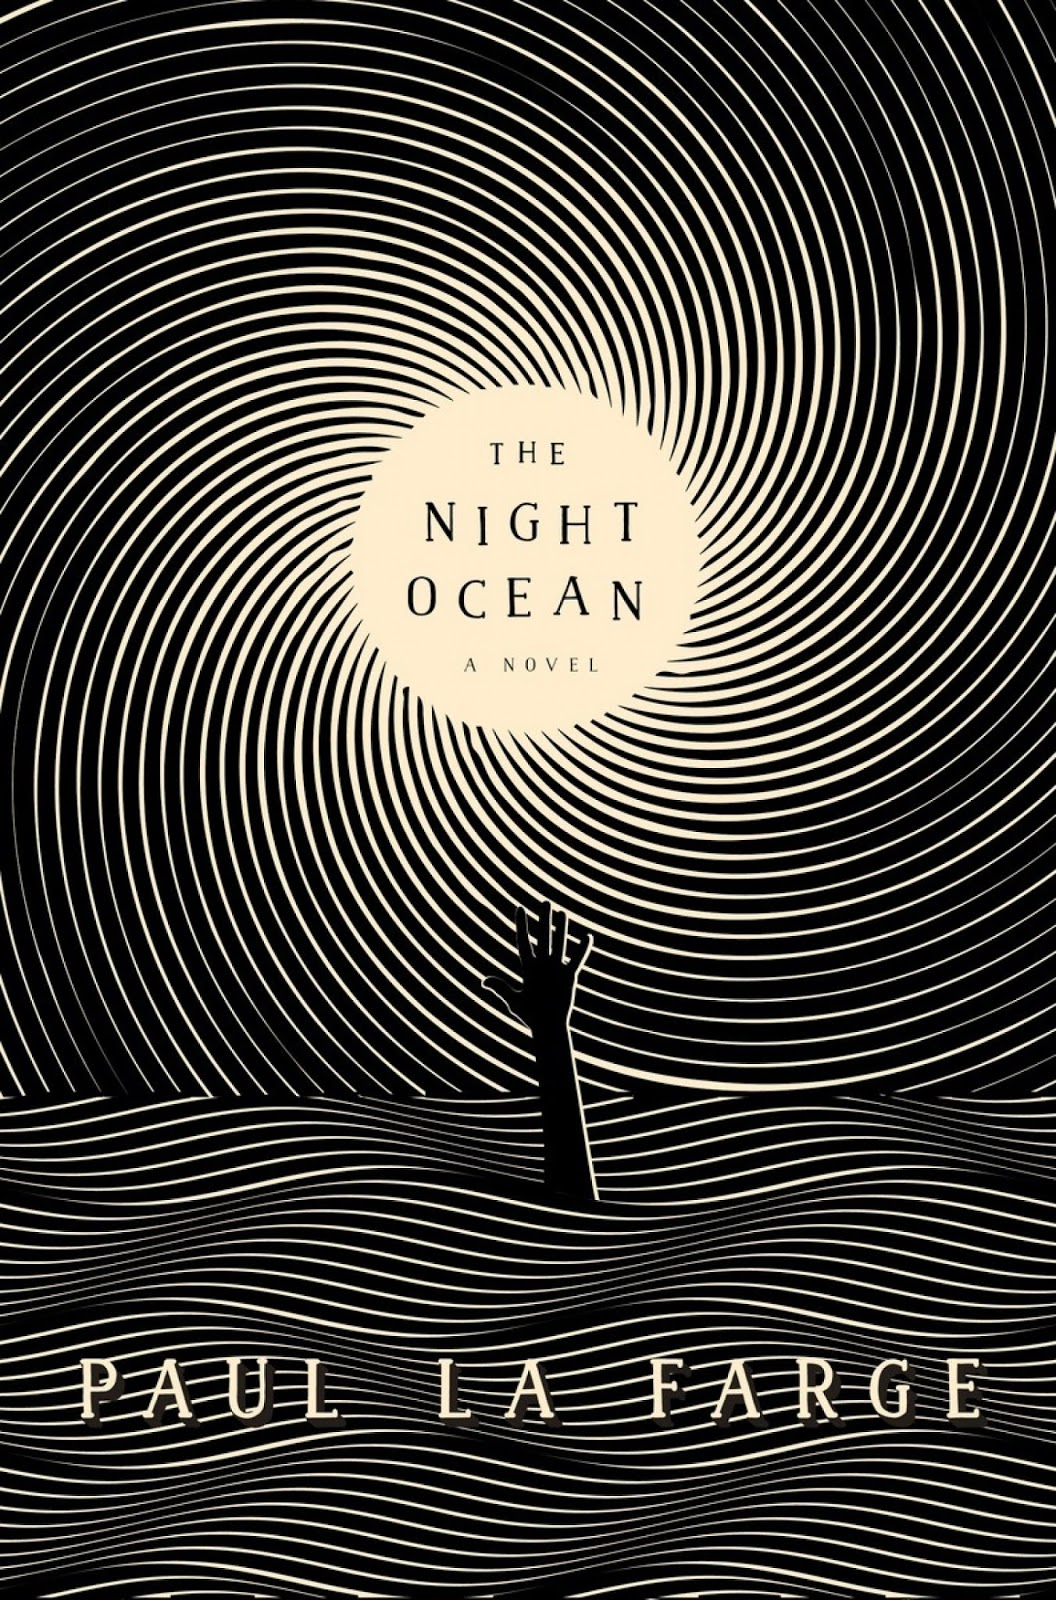 night-ocean-design-will-staehle.jpg